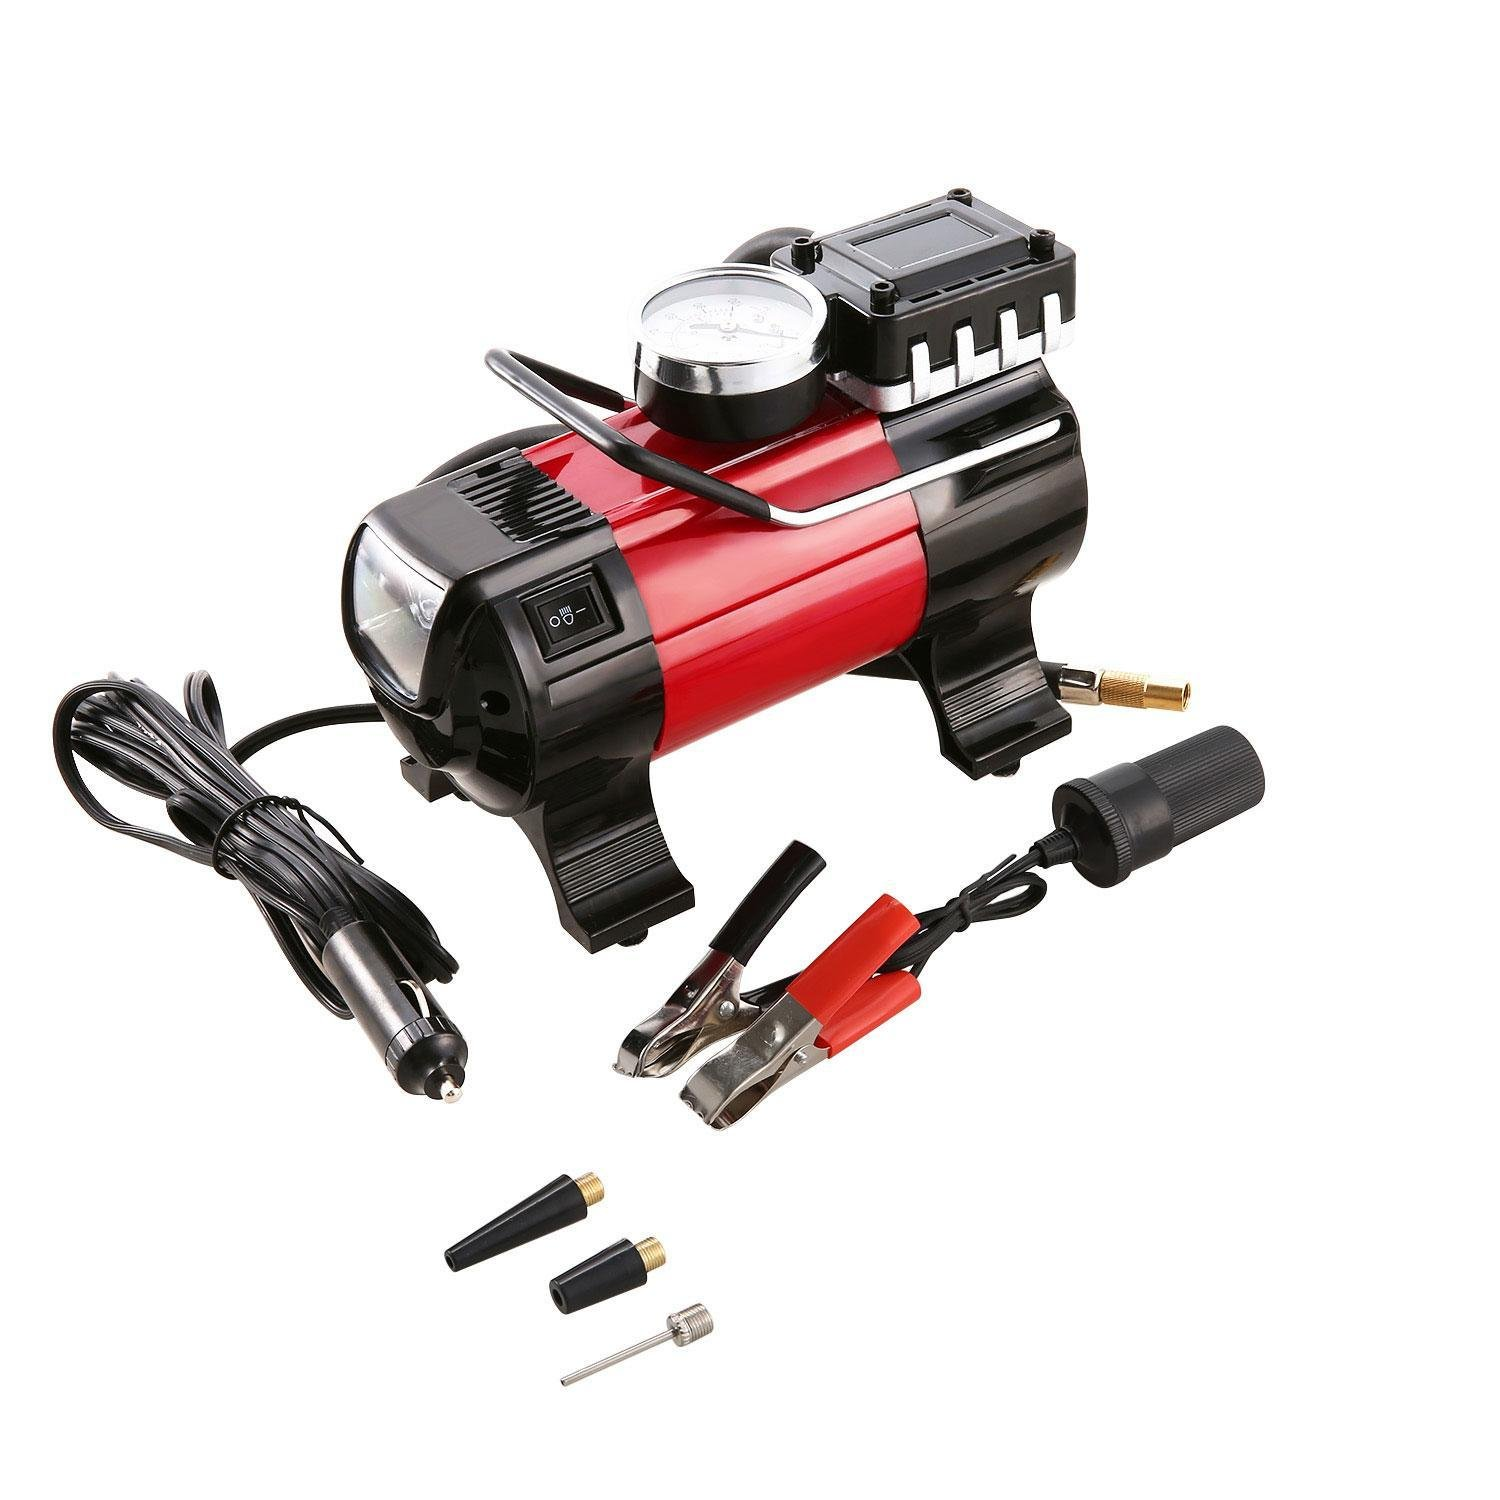 150 PSI 12V 168W Air Compressor Pump, Portable Electric Tire Inflator for Car/Motorcycle/ Bicycle (US Stock)